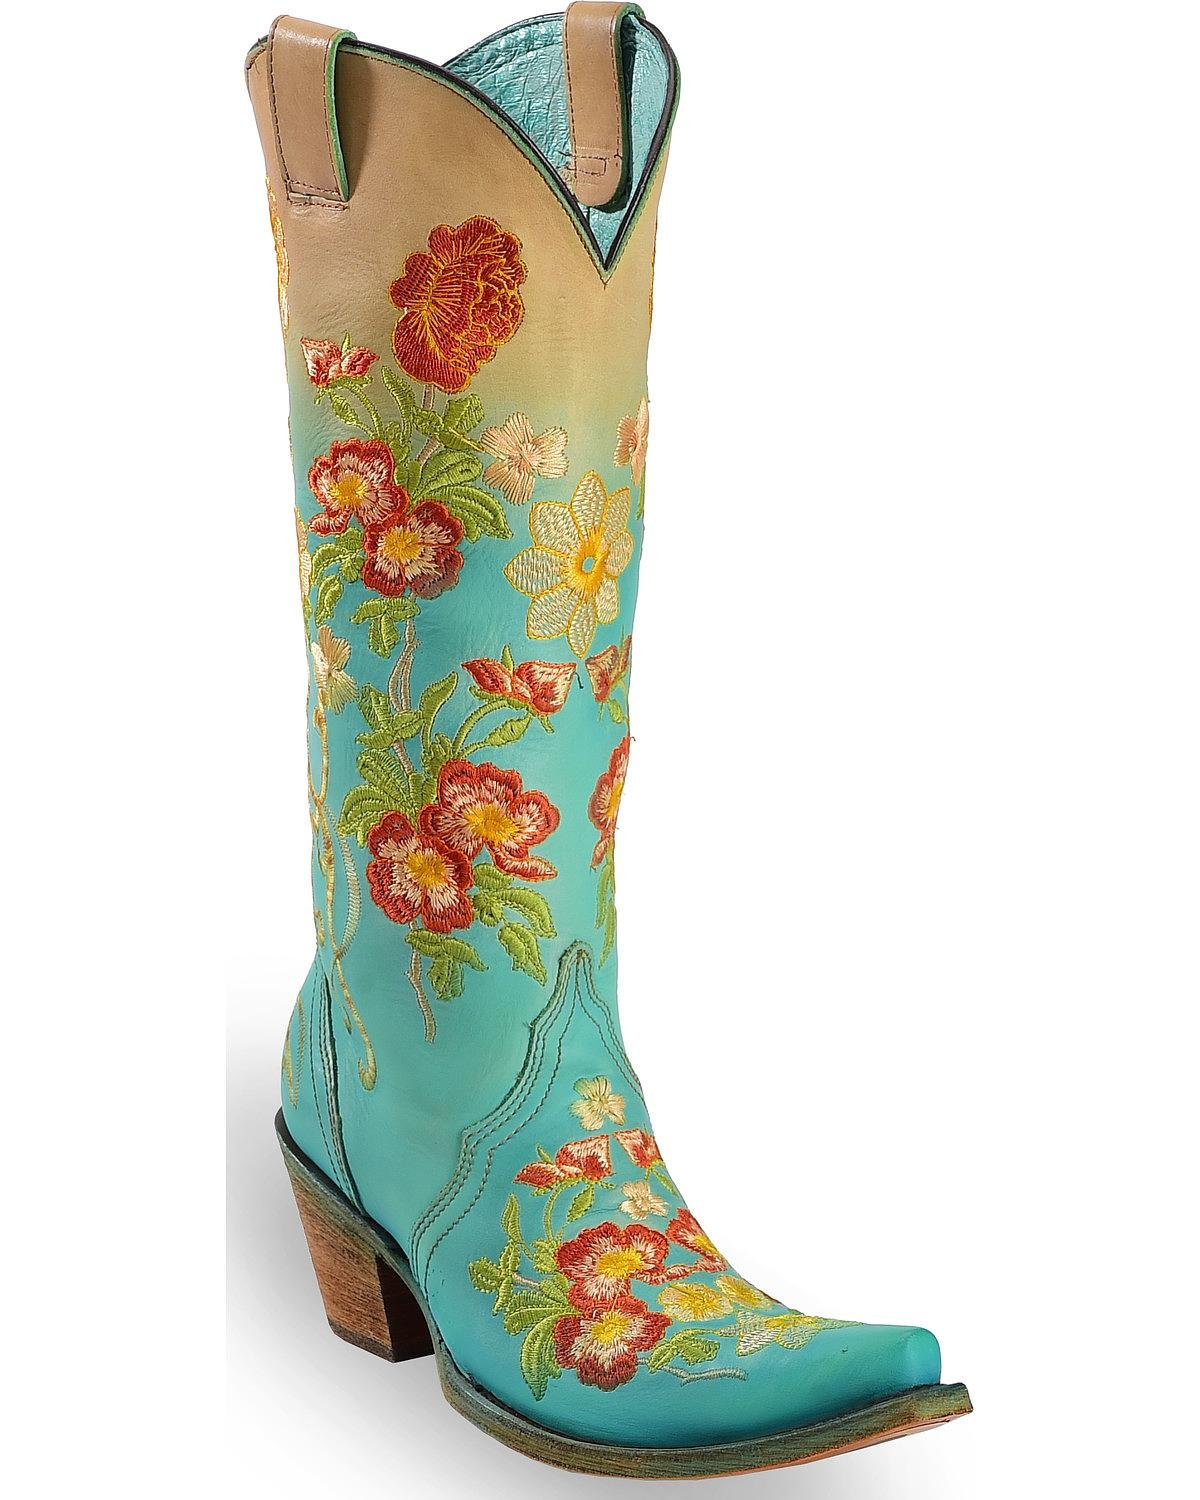 Corral Women's Turquoise Orange Floral Embroidered Boot Snip Toe Turquoise 9.5 M by CORRAL